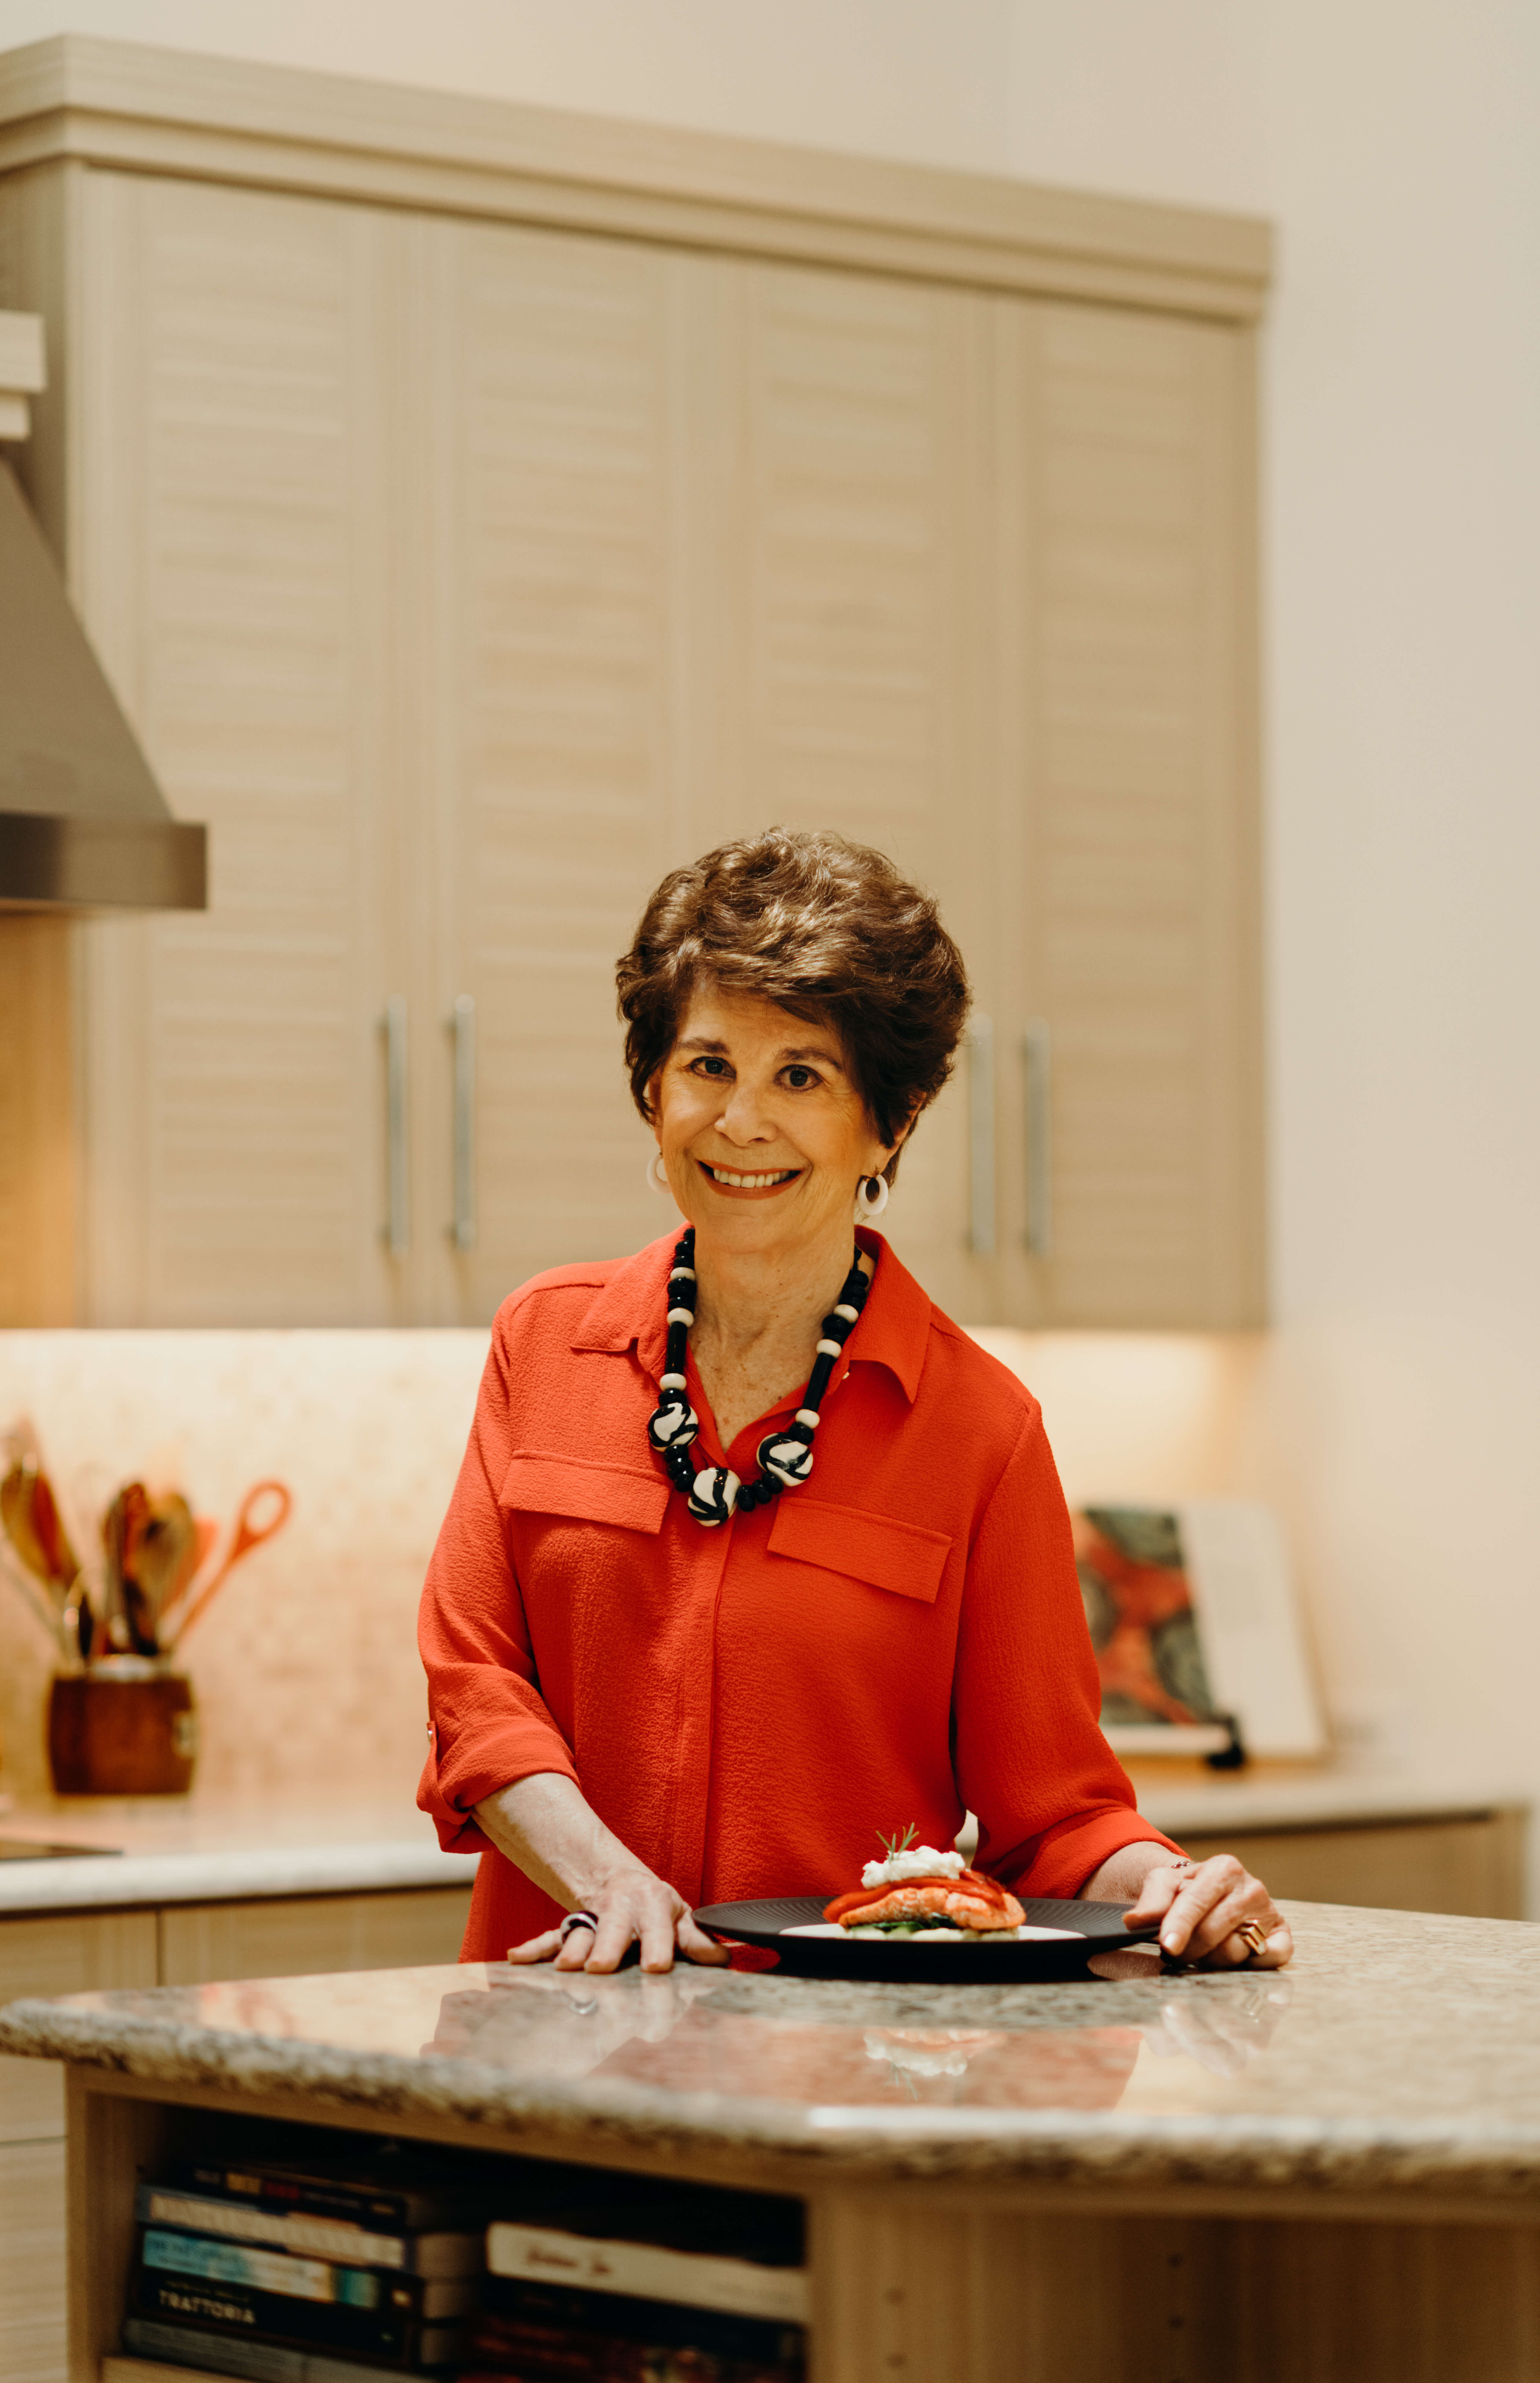 In The Kitchen with Louise Fontaine photo by Page Teahan